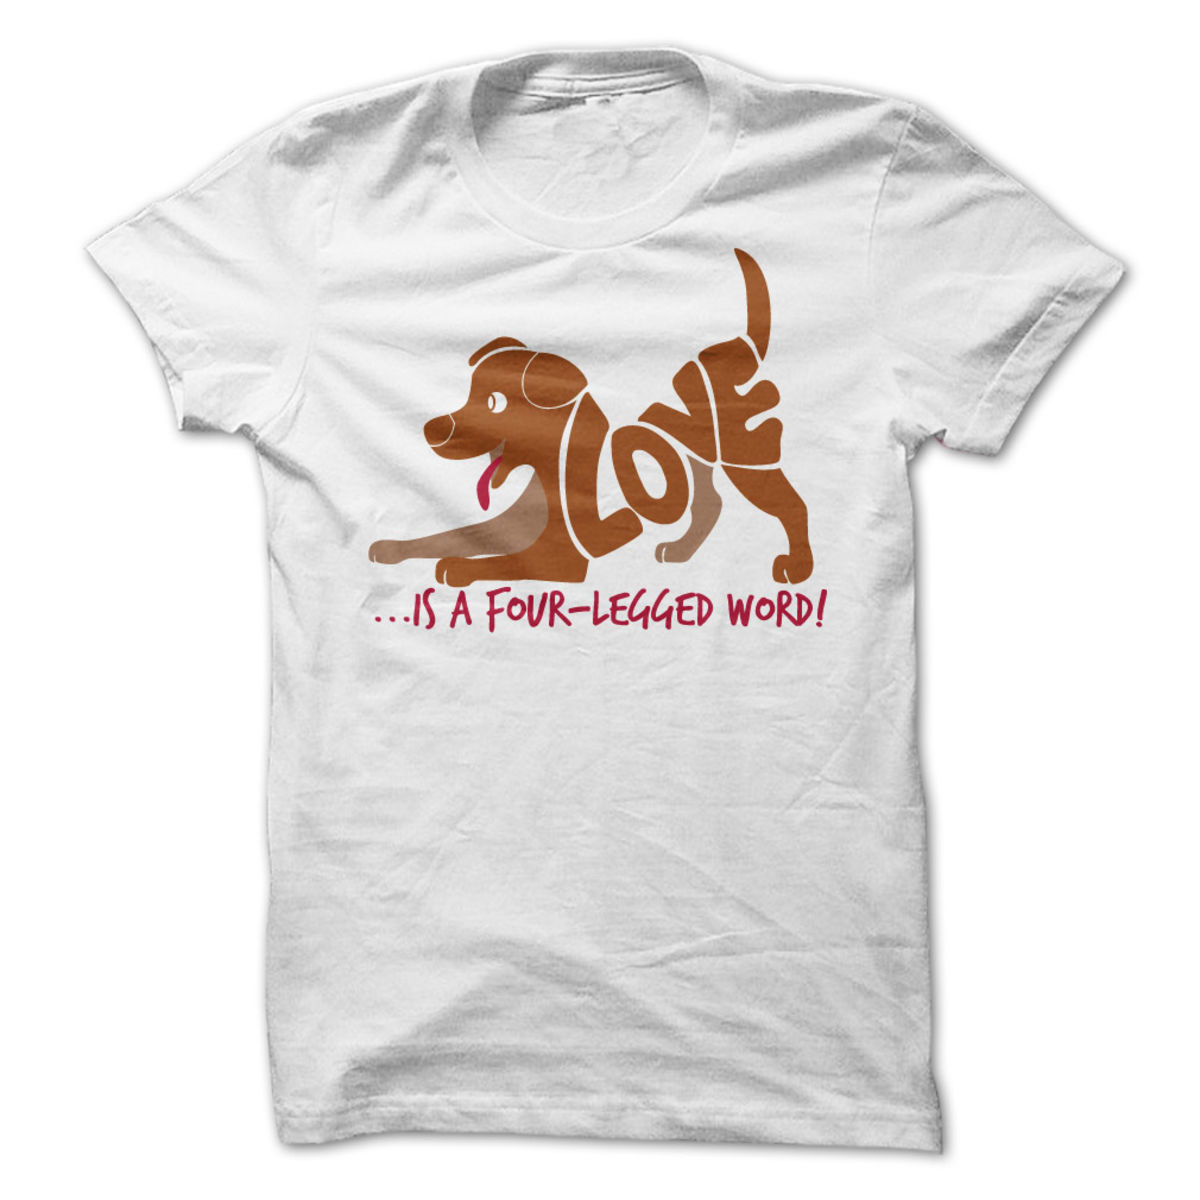 Headline for Custom t Shirts for Dogs CRAzy t-shirts with dogs on them dog tees Funny t Shirts For Dog Lovers